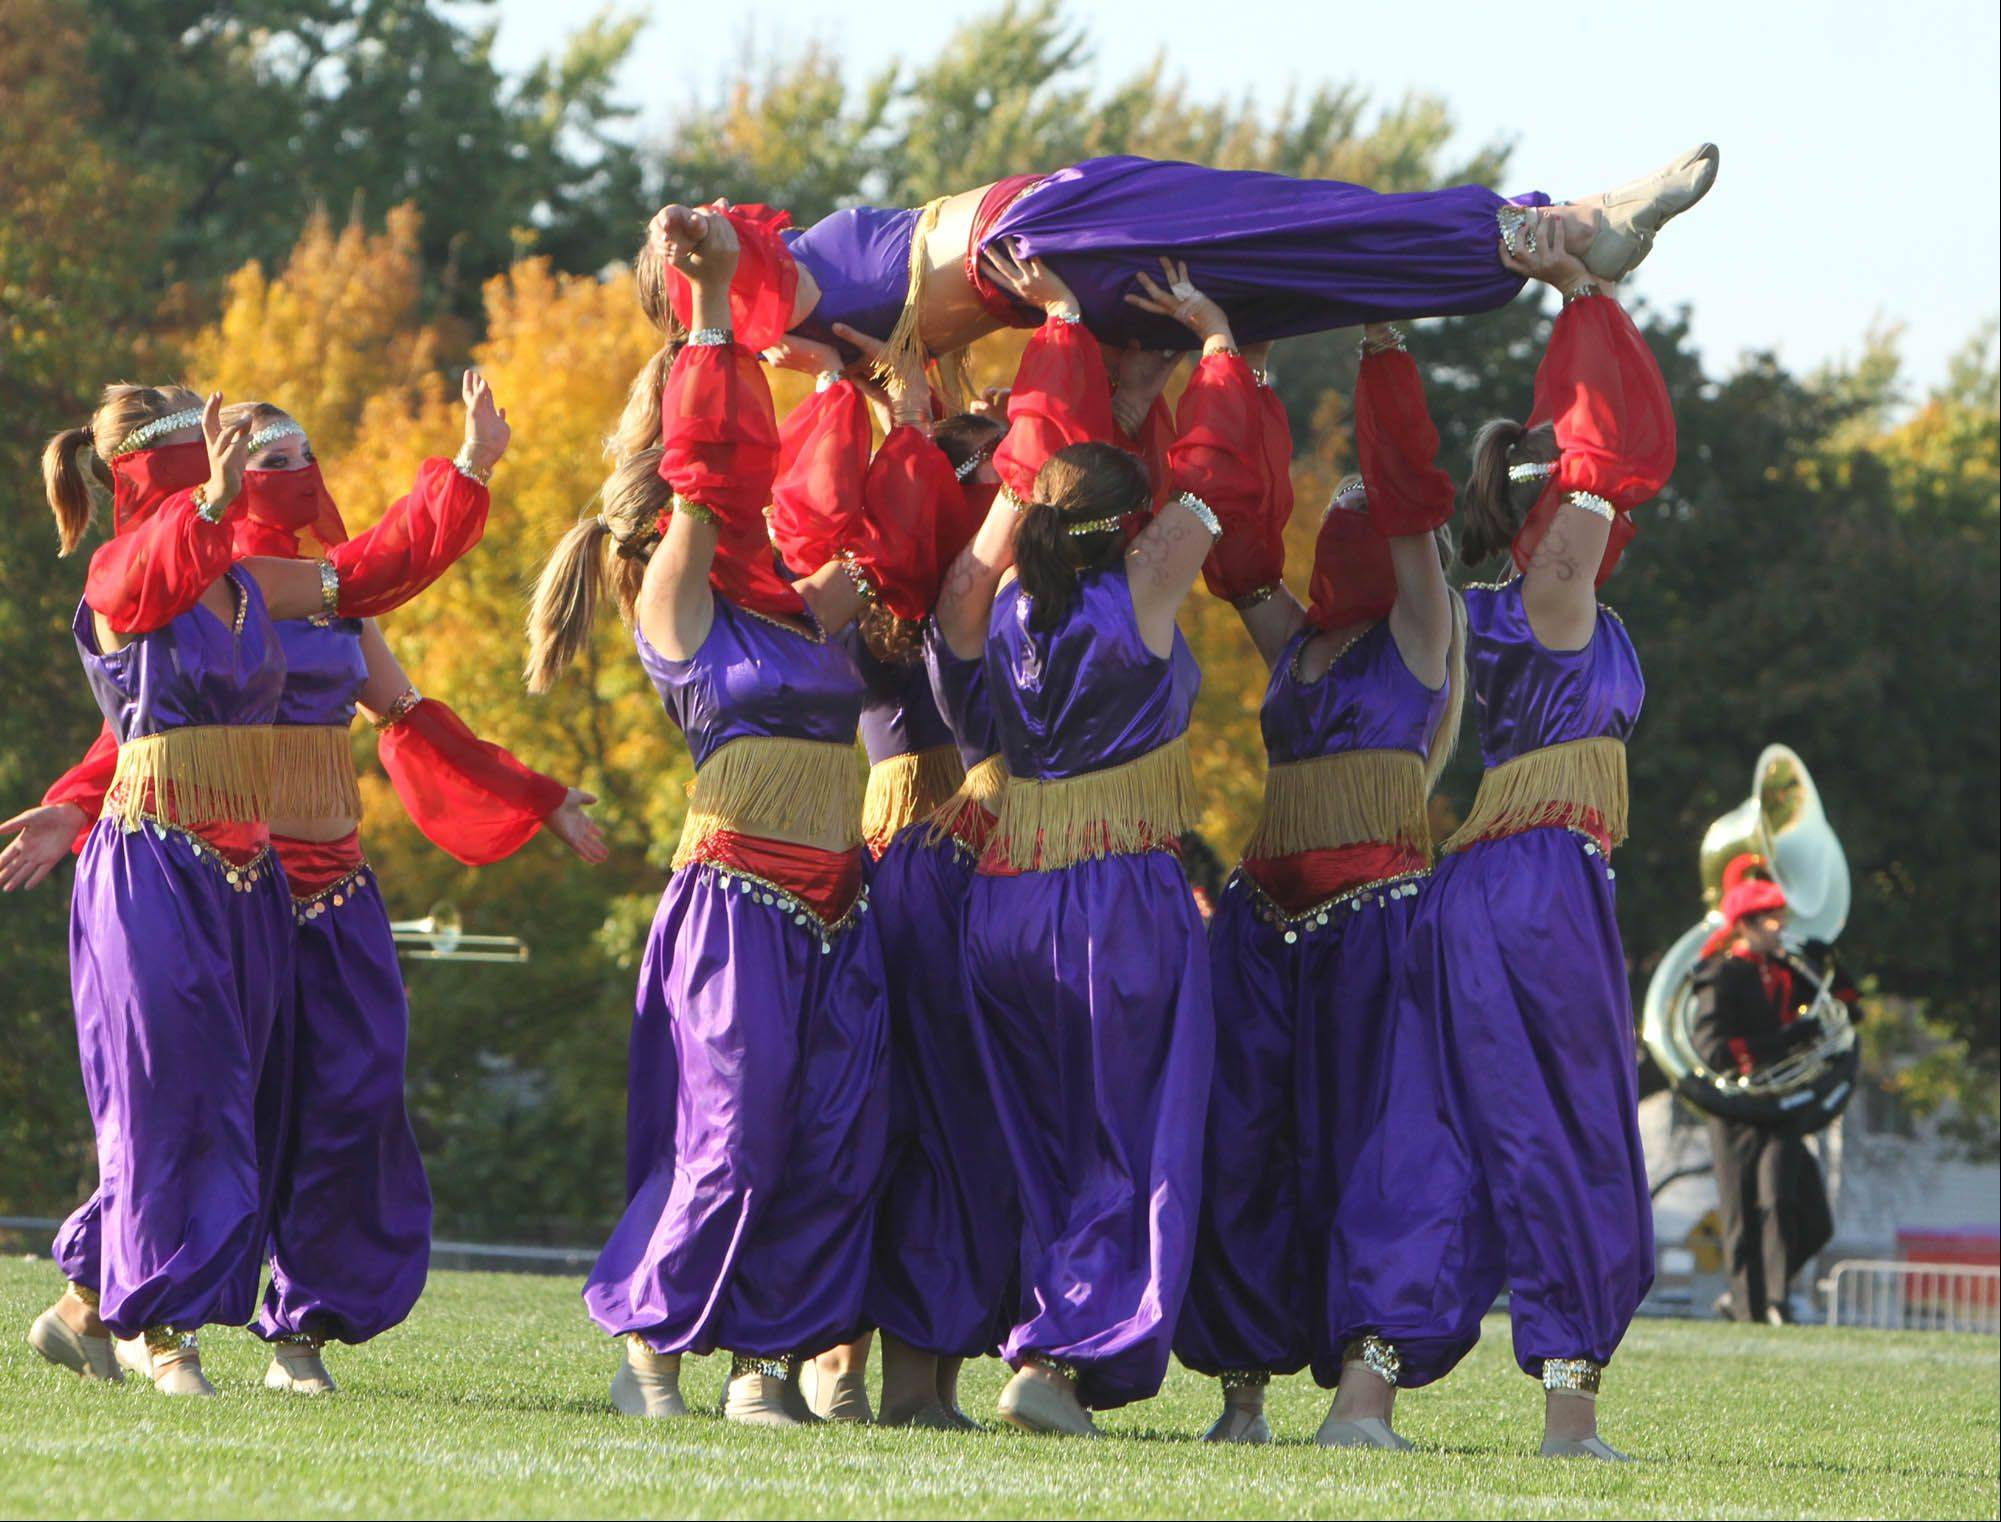 Next up for the award-winning Batavia High School Marching Bulldogs is a trip to Champaign Oct. 22 to compete in the Marching Illini Championships.